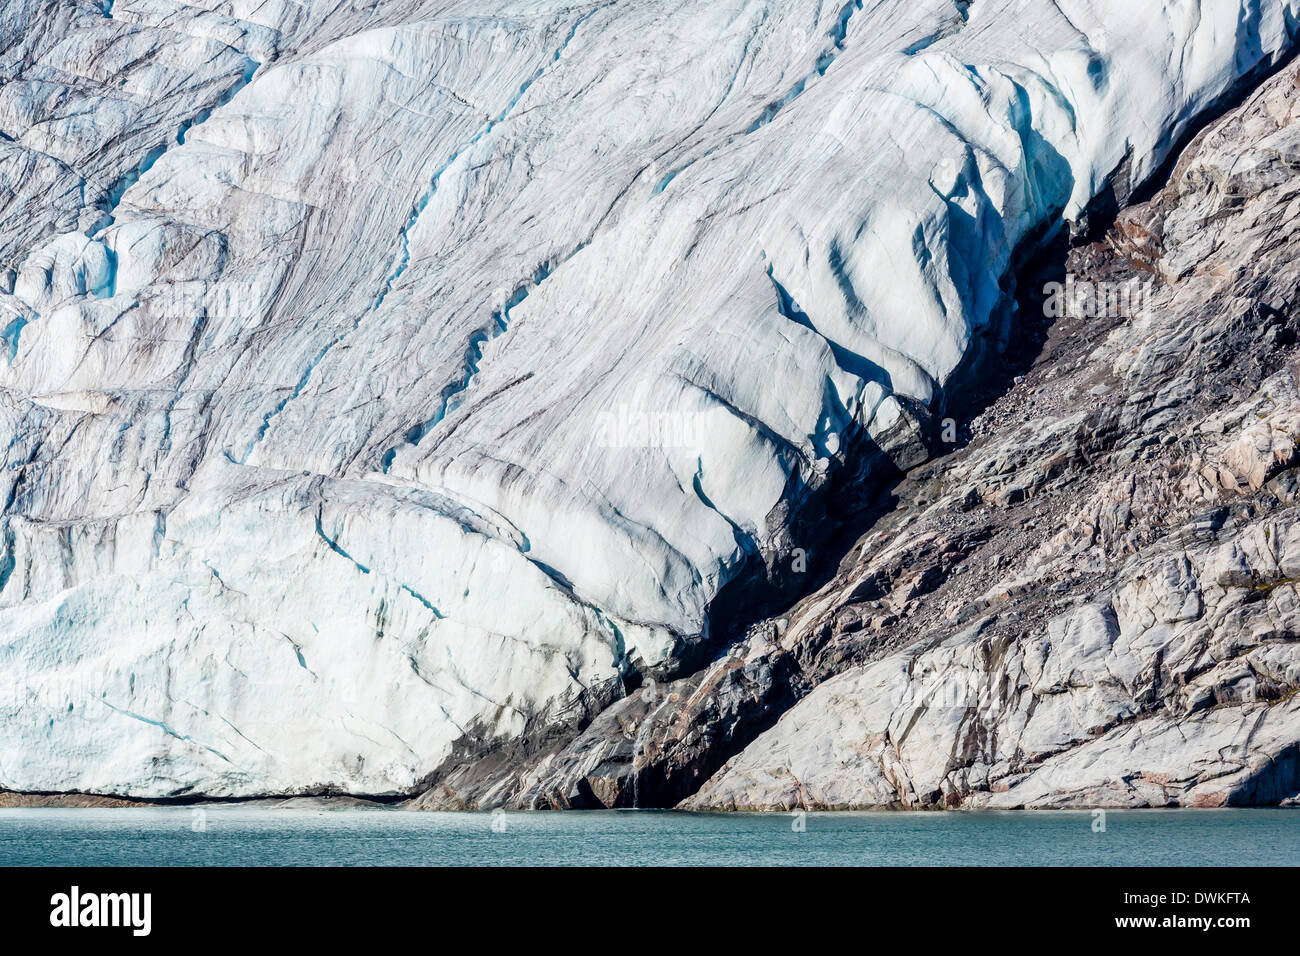 Glacier detail in Icy Arm, Baffin Island, Nunavut, Canada, North America Stock Photo